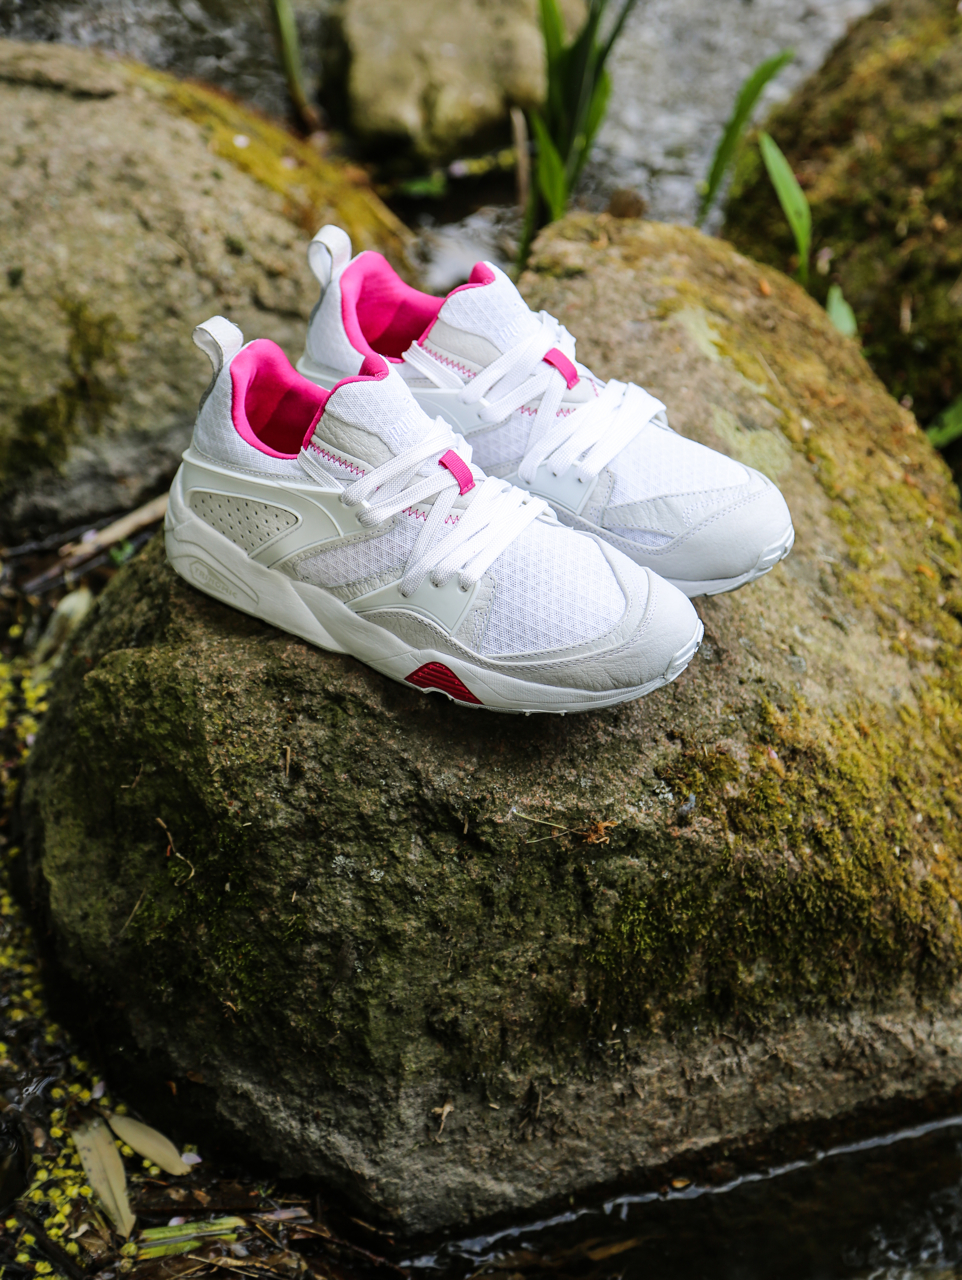 Puma Blaze of Glory Evolution Pack 8